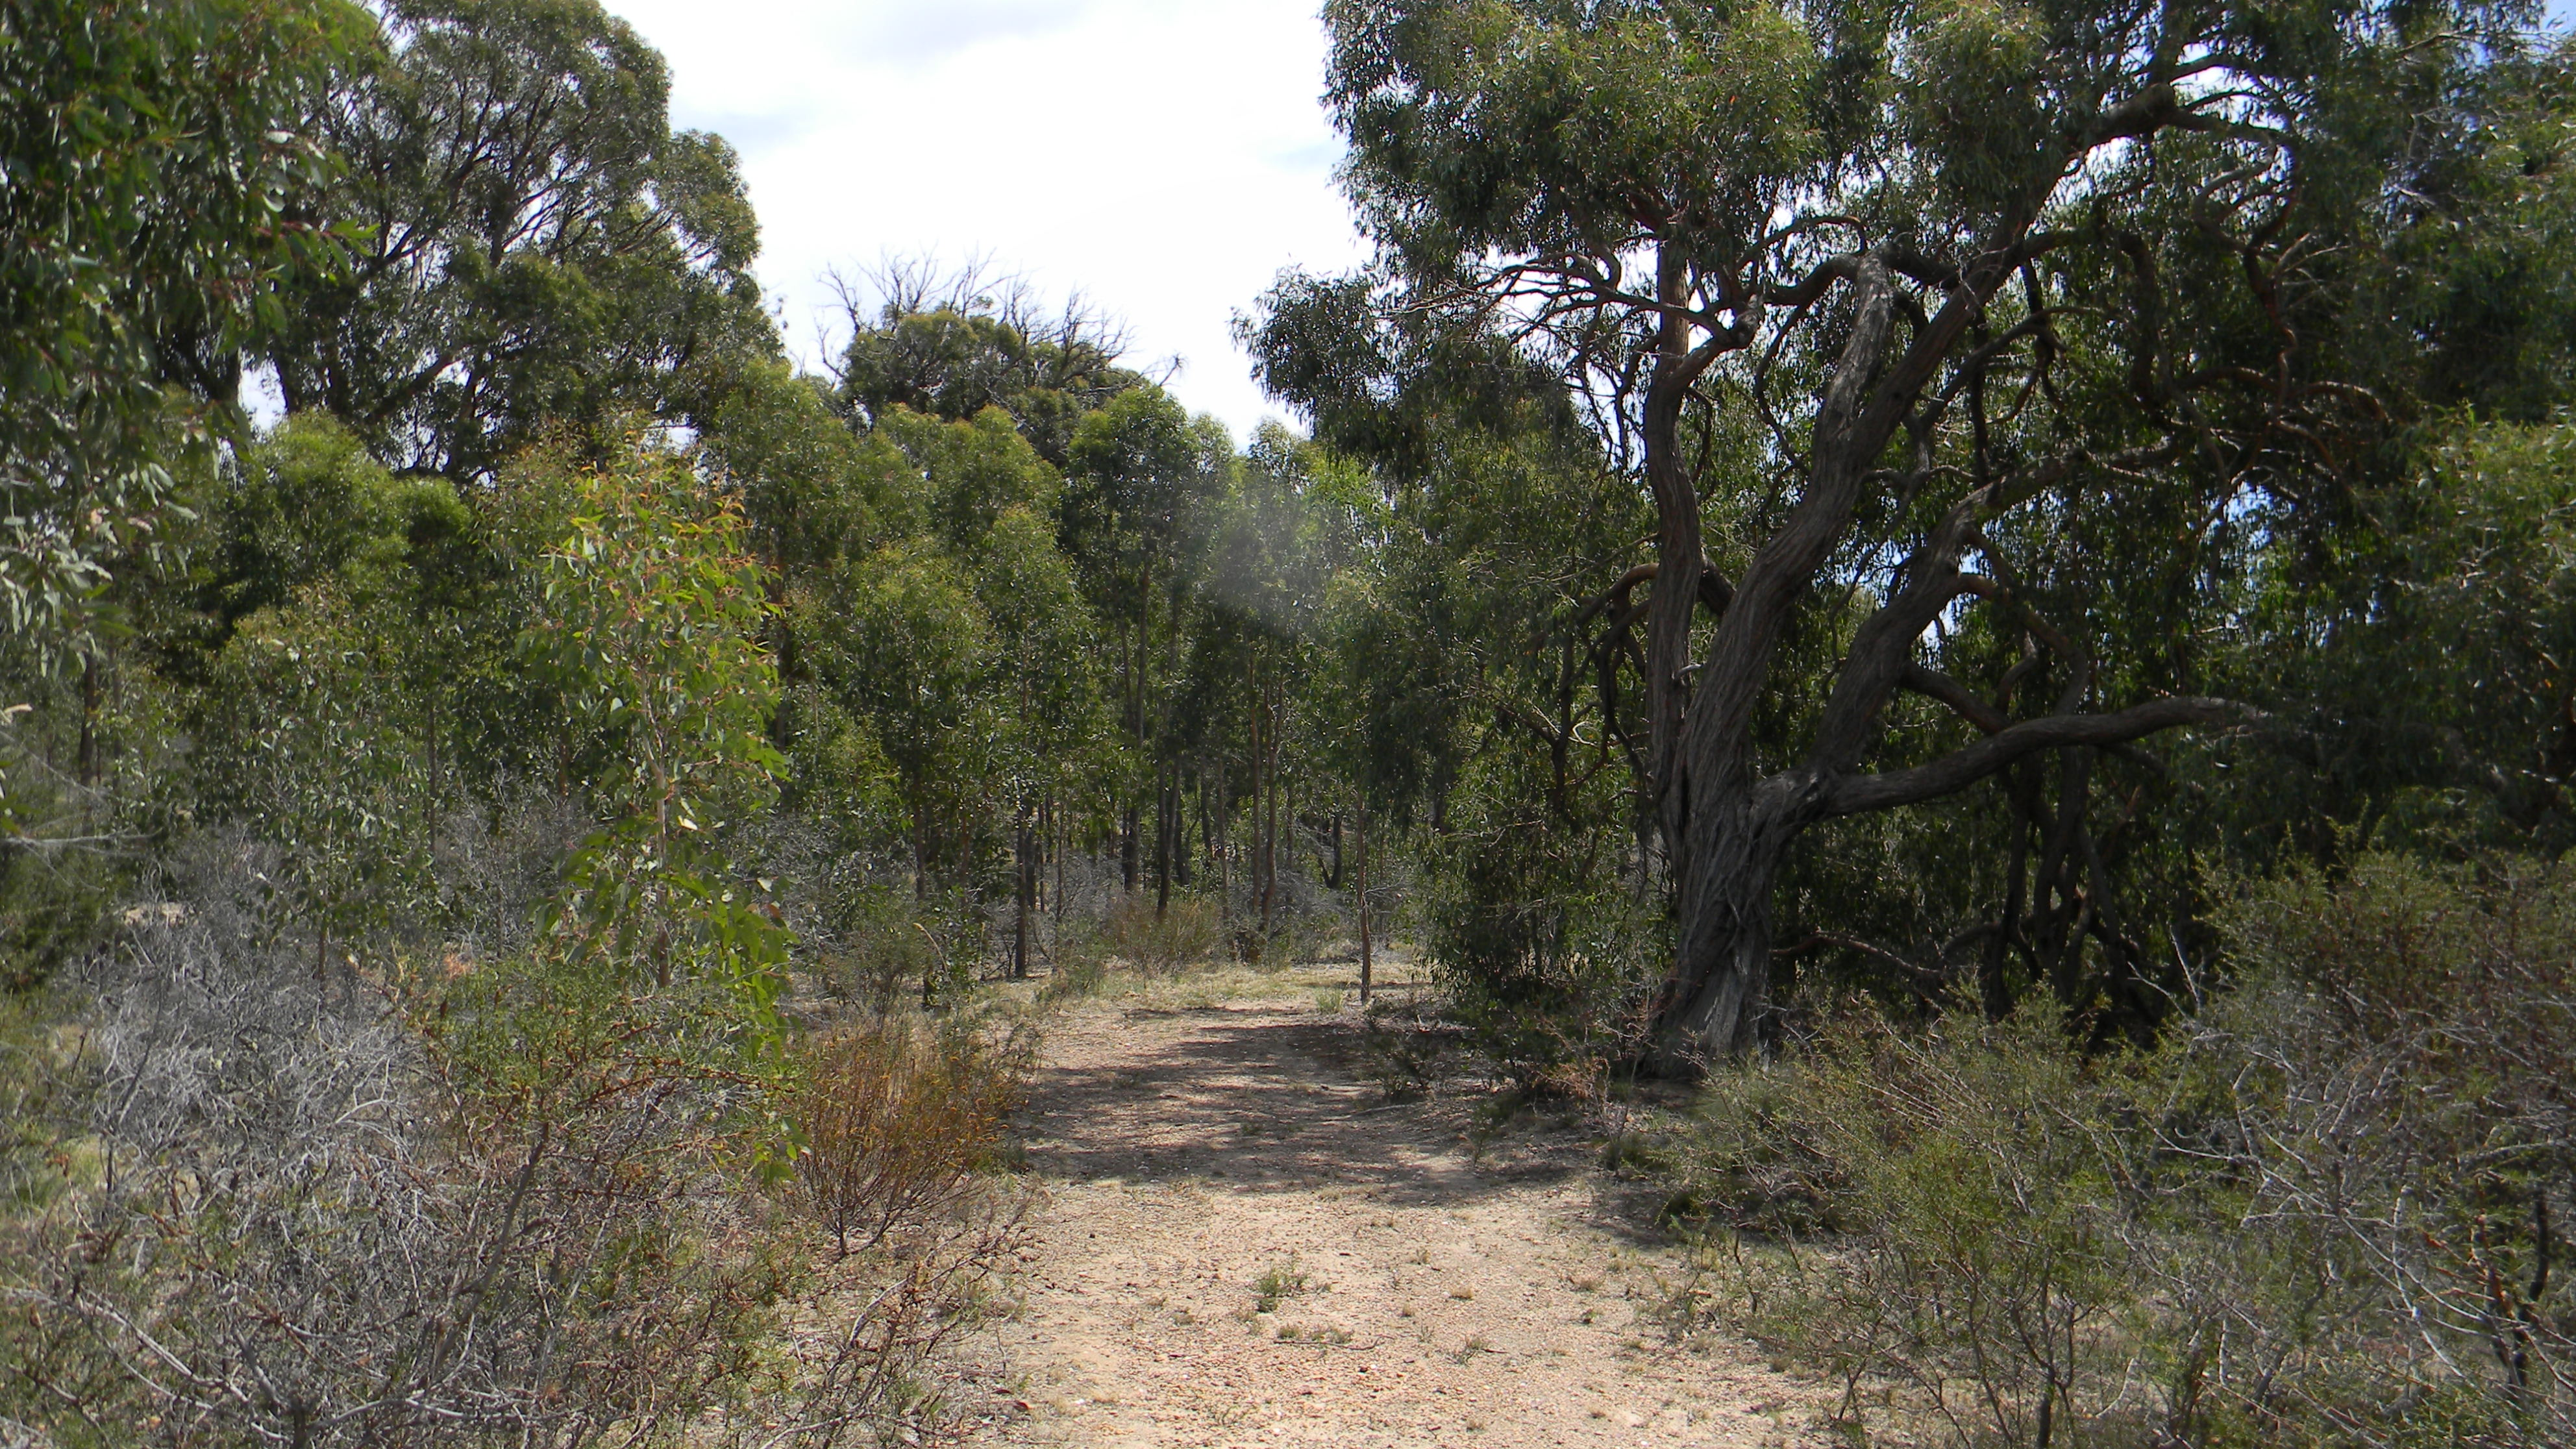 Northside Nudist Club Nude Bush Walking Track Victoria Melbourne Family. Nudism / naturism in central victoria near melbourne